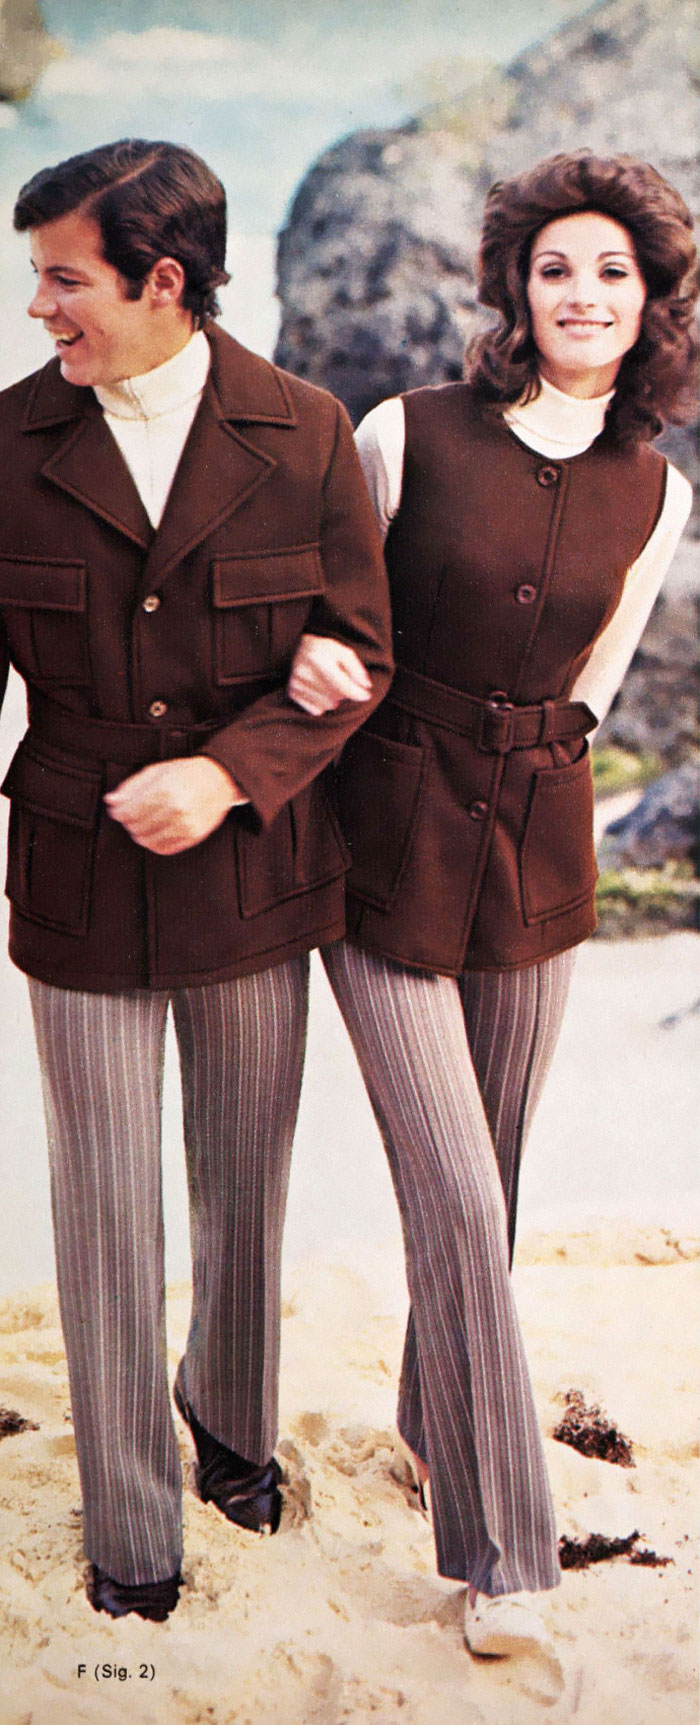 Matching-His-And-Her-Fashion-1970